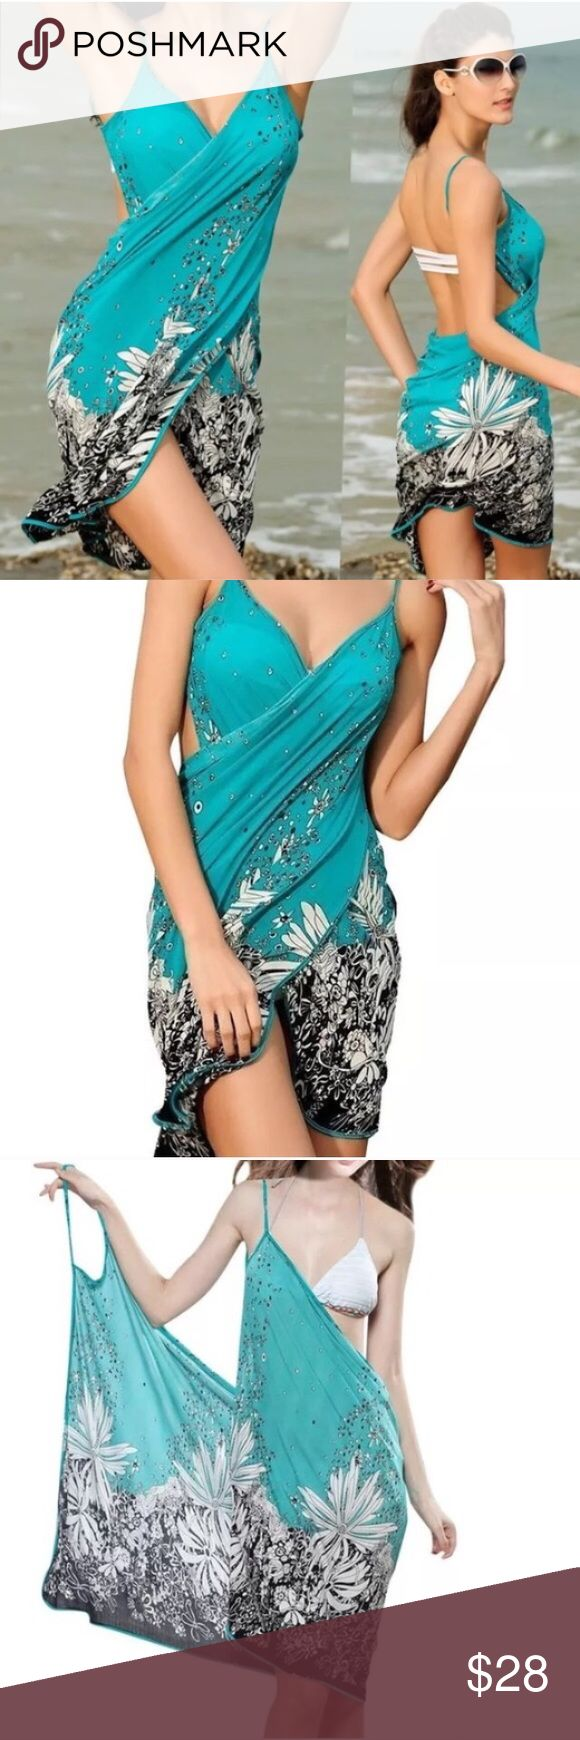 "BRACH WRAP cover up SWIM WEAR bathing suit sarong Resort wear cover up for all your summer needs. Poolside, beach, cruising or just relaxing, this light weight body sarong is both pretty and functional. Great for Travel! Has stretch. About 35"" long when in wrap formation. (Ju28) Swim Coverups"